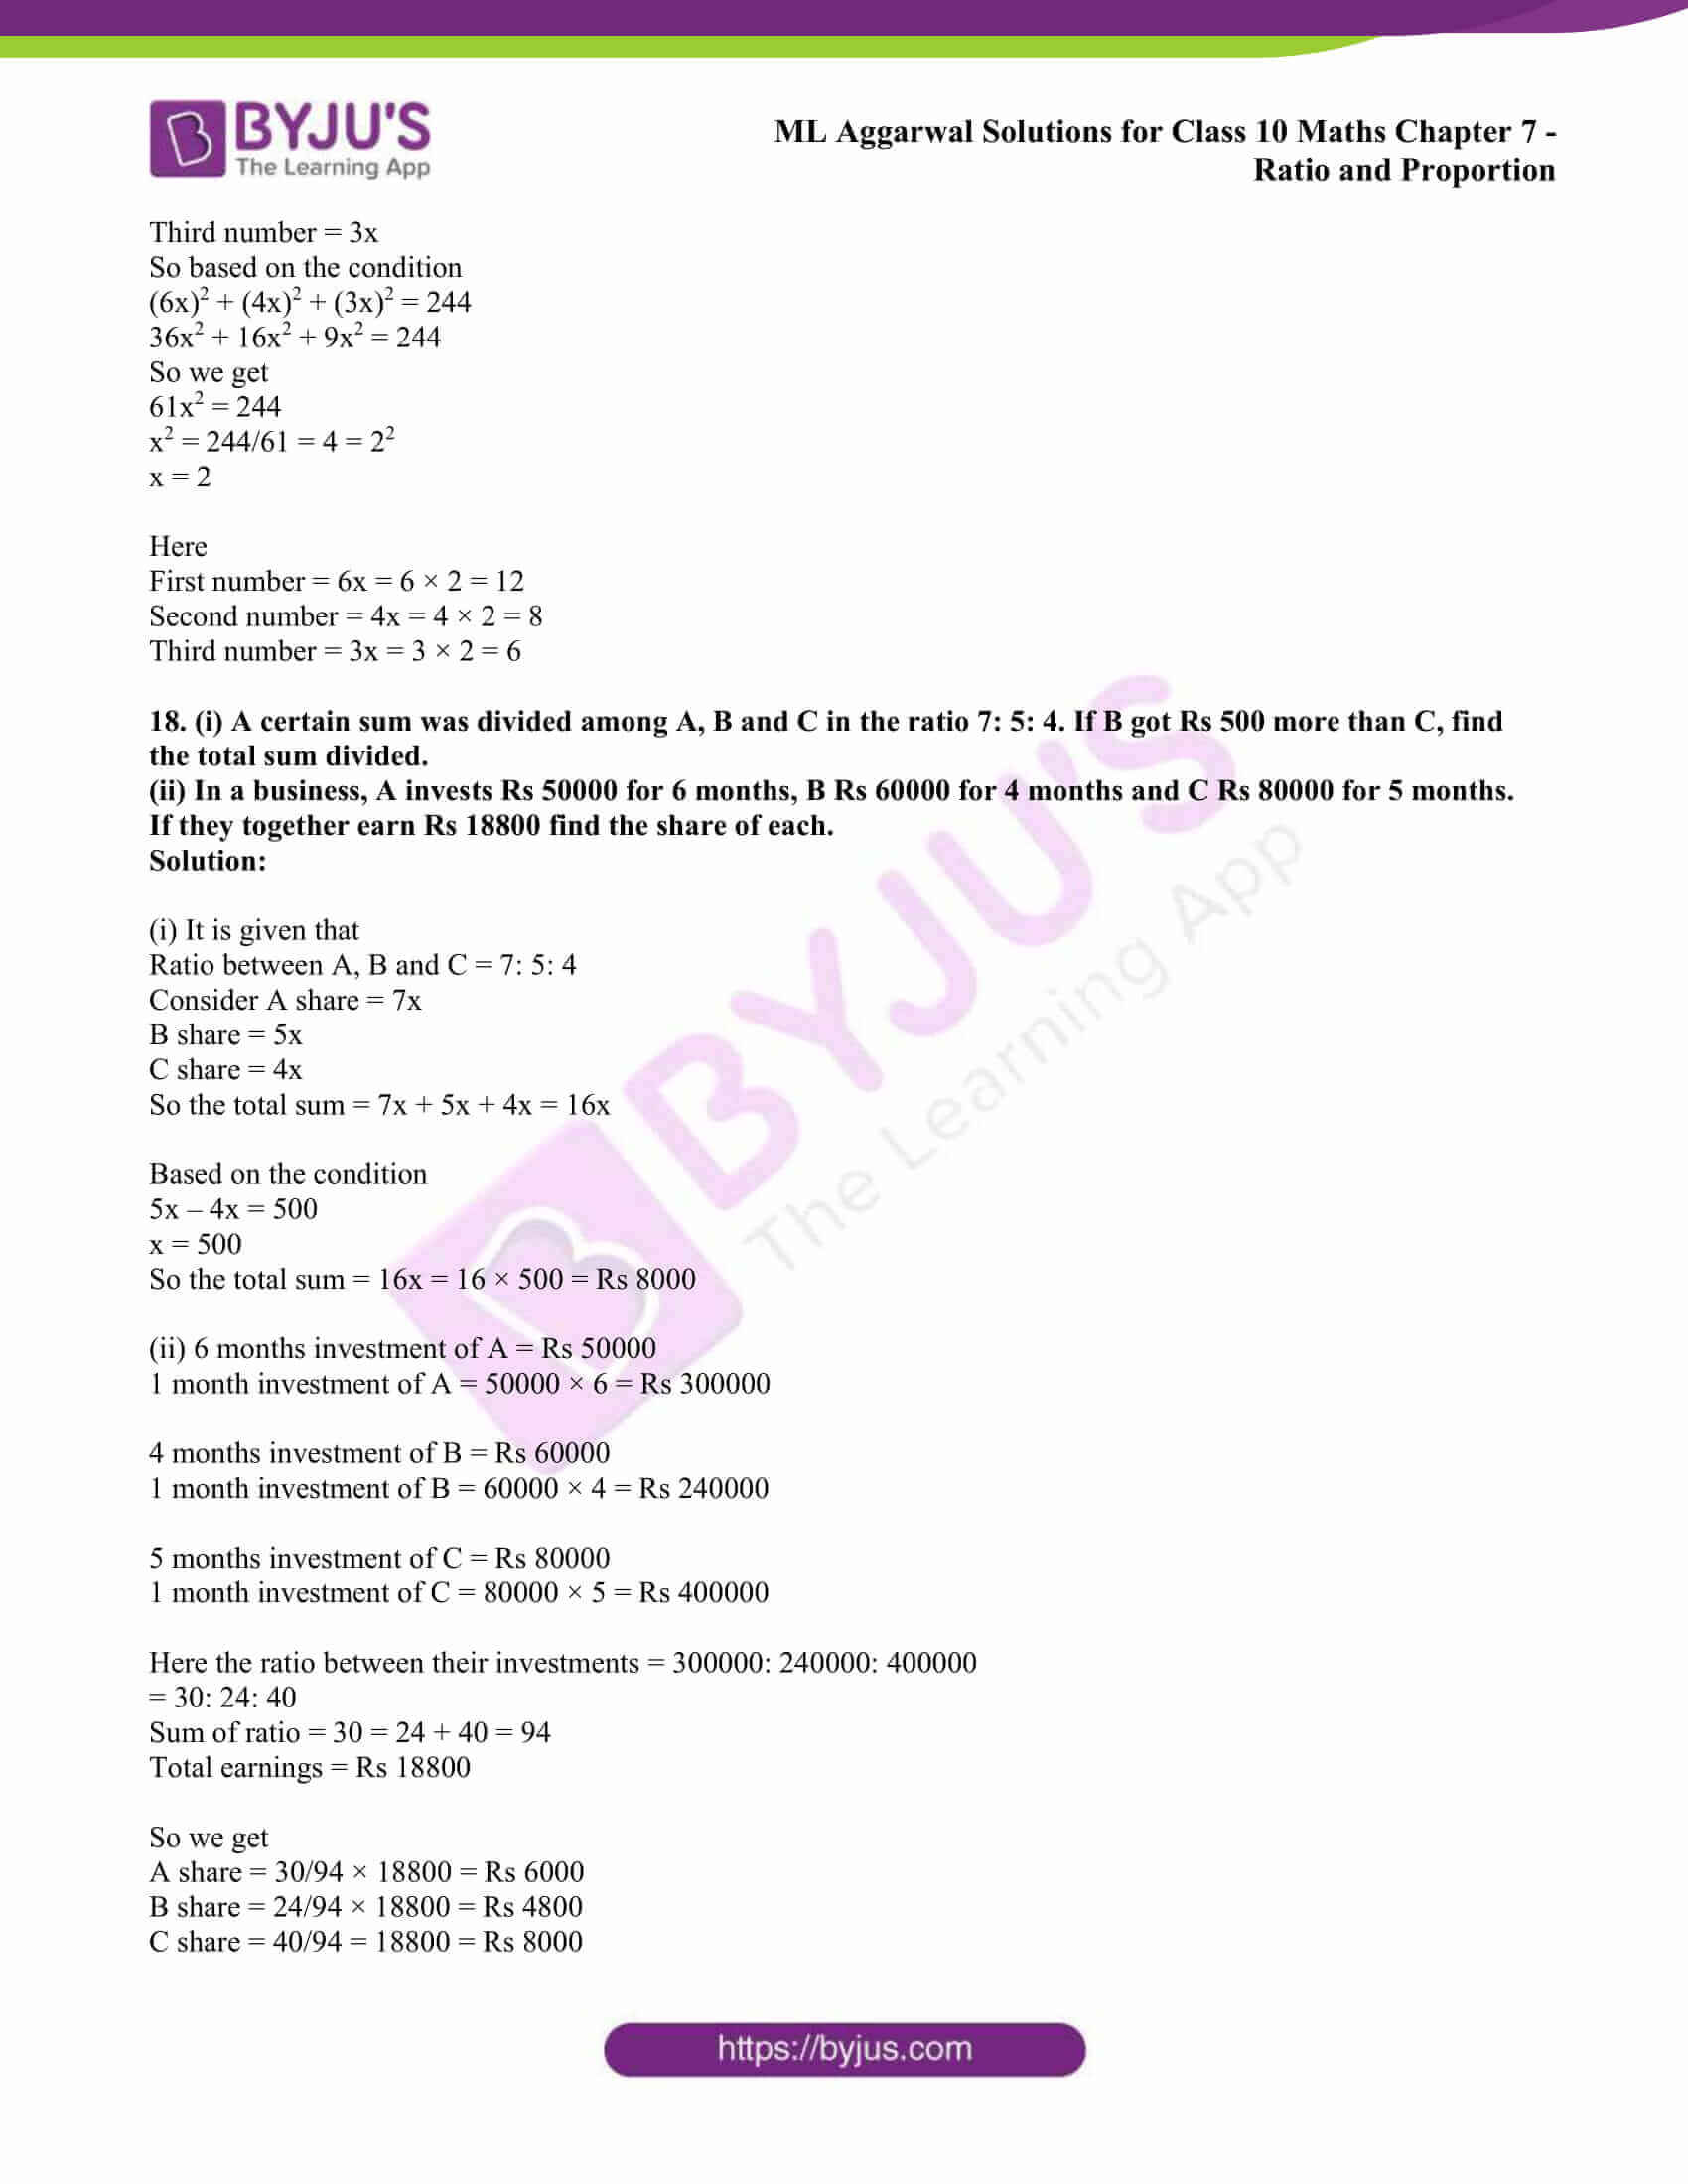 ml aggarwal solutions class 10 maths chapter 7 11